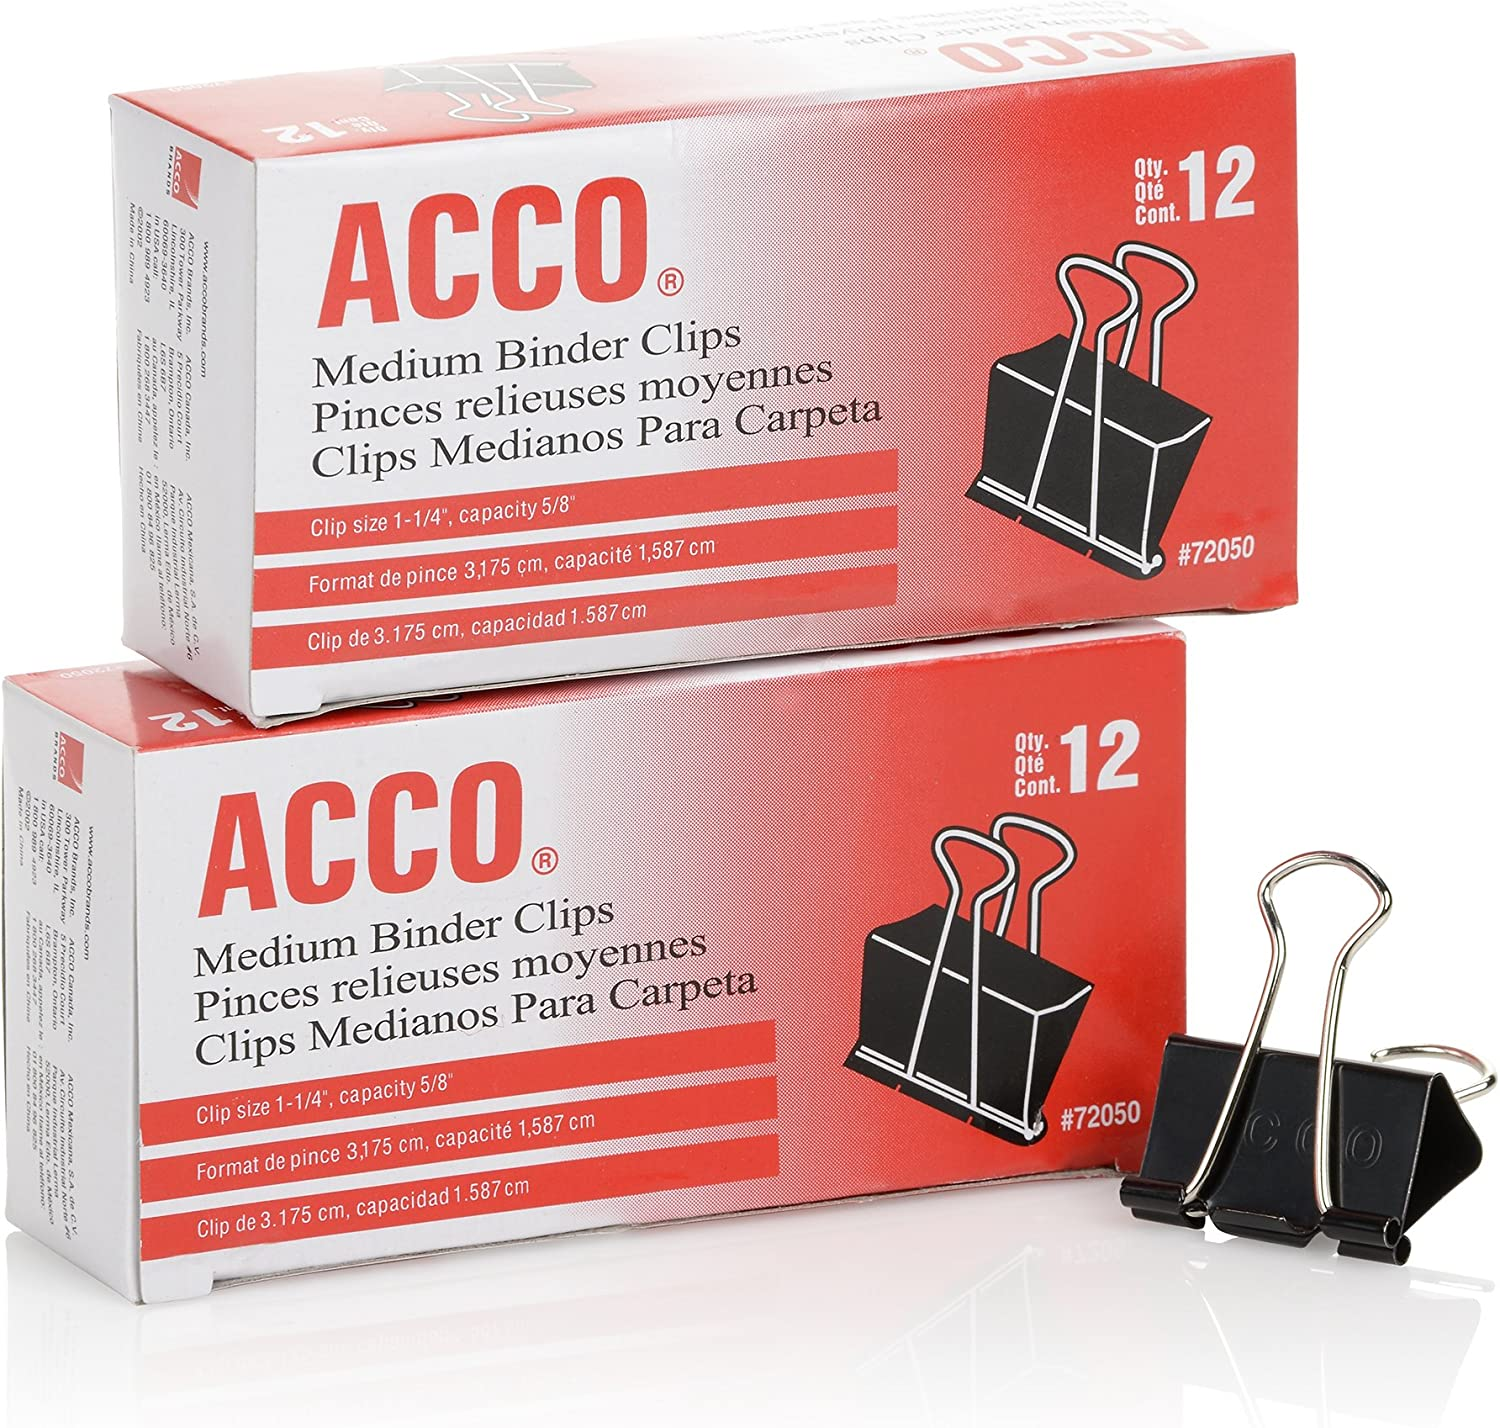 ACCO Binder Clips, Medium, Black, 12 per Box, 2 Boxes (72062) : Office Products